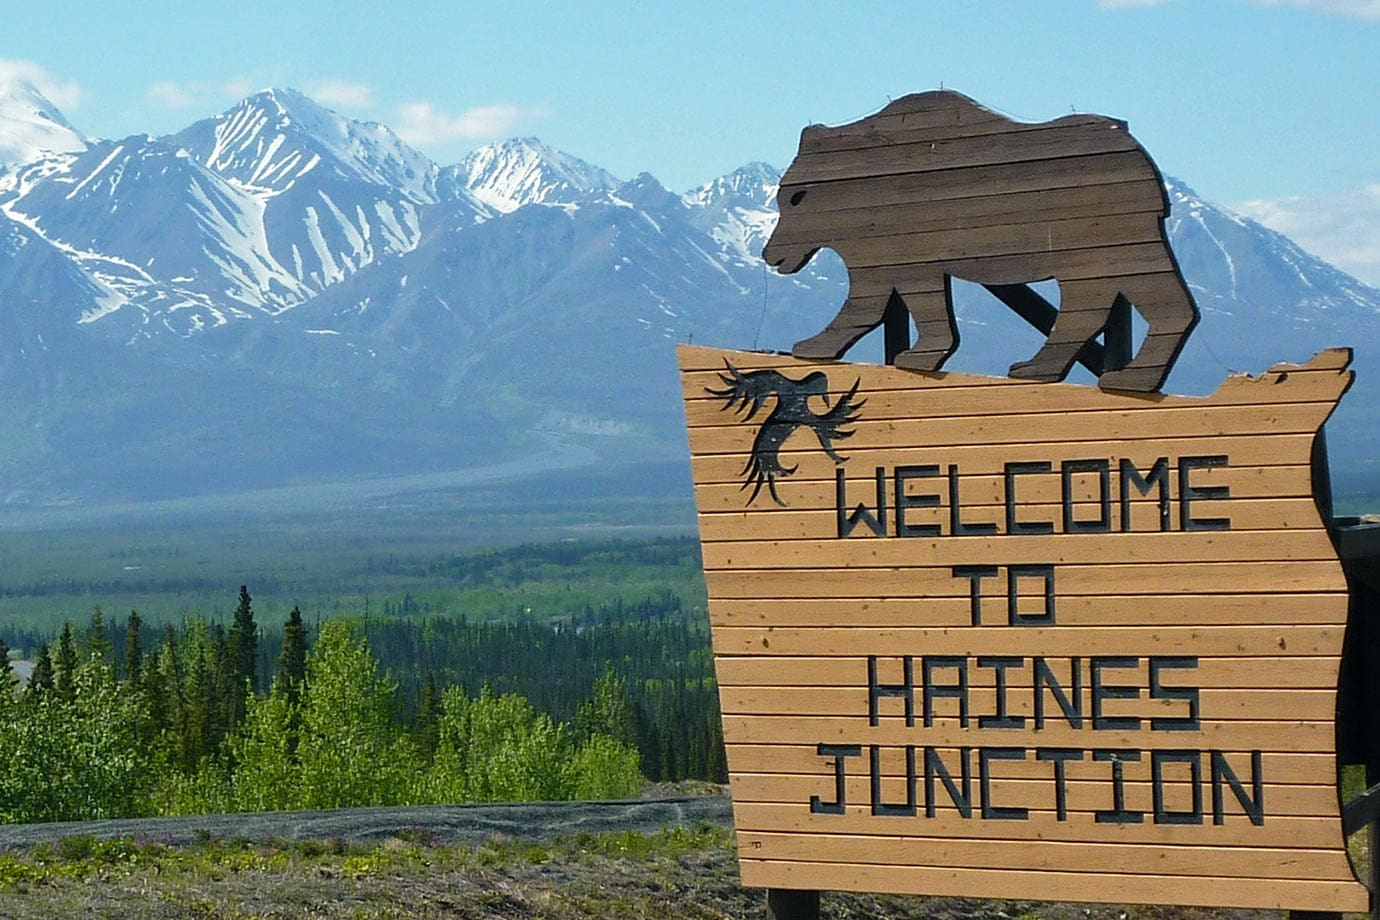 Welcome to Haines Junction